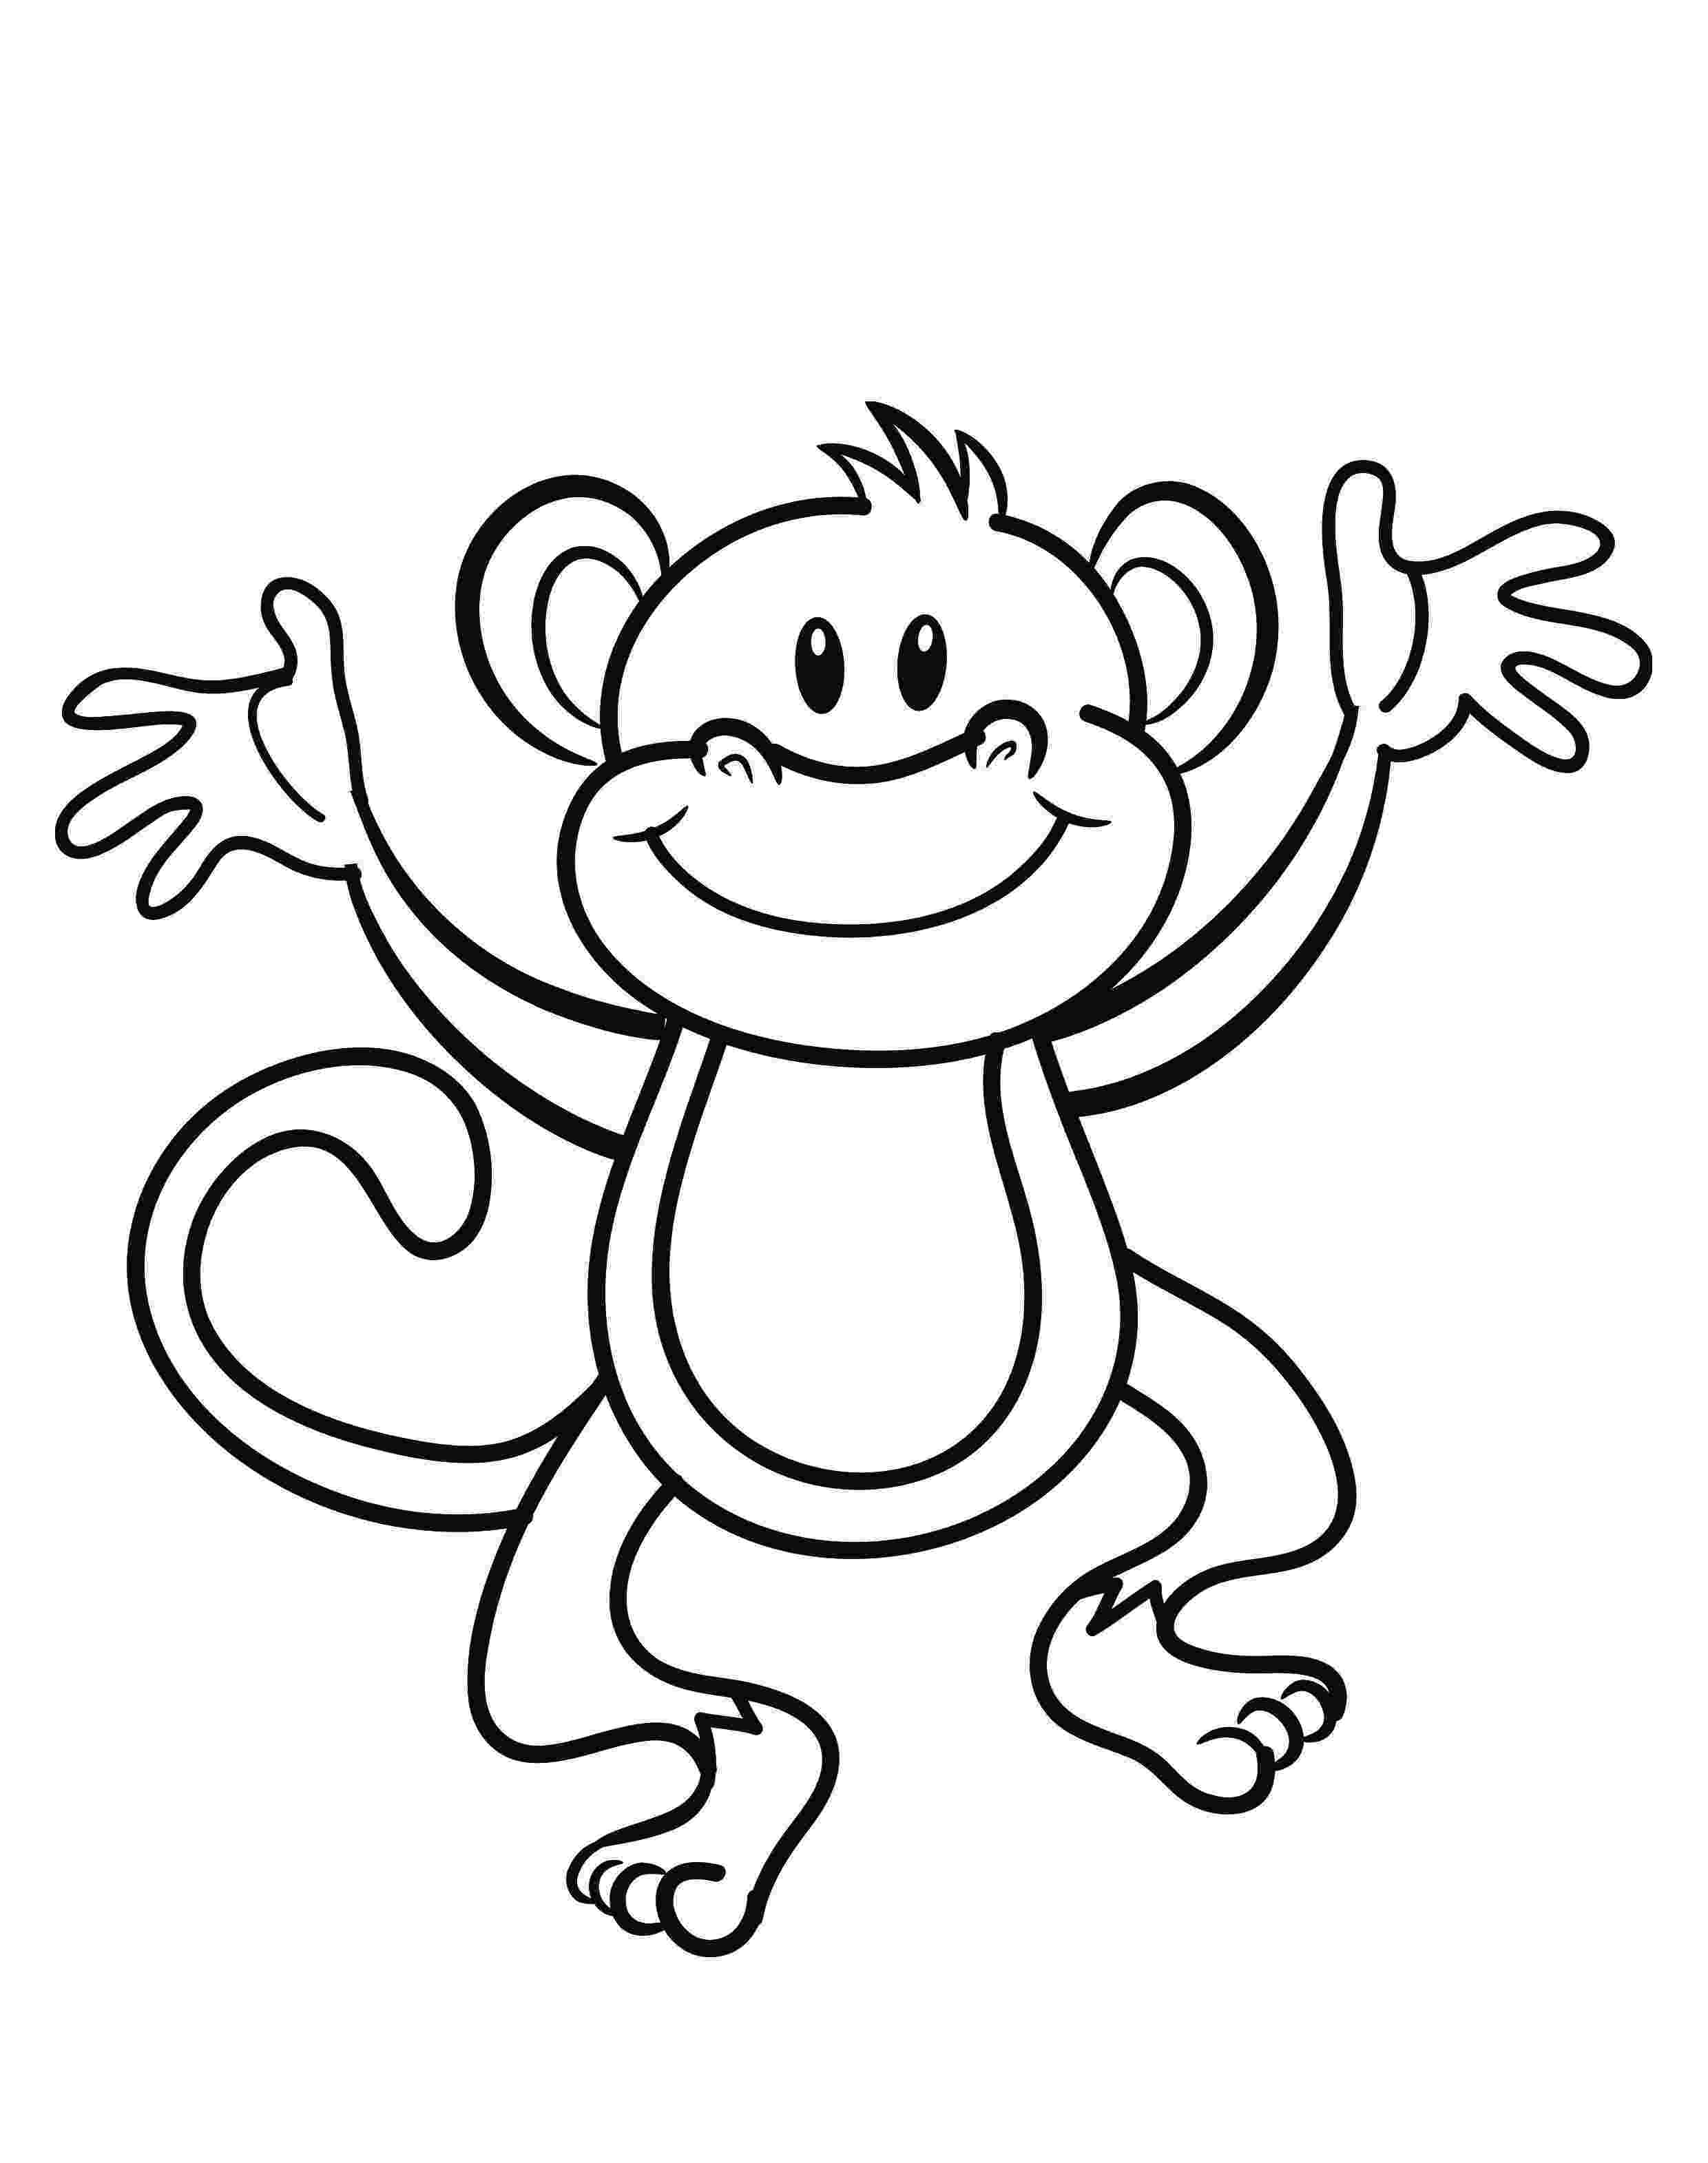 coloring pages of monkeys monkey coloring pages printable of pages coloring monkeys